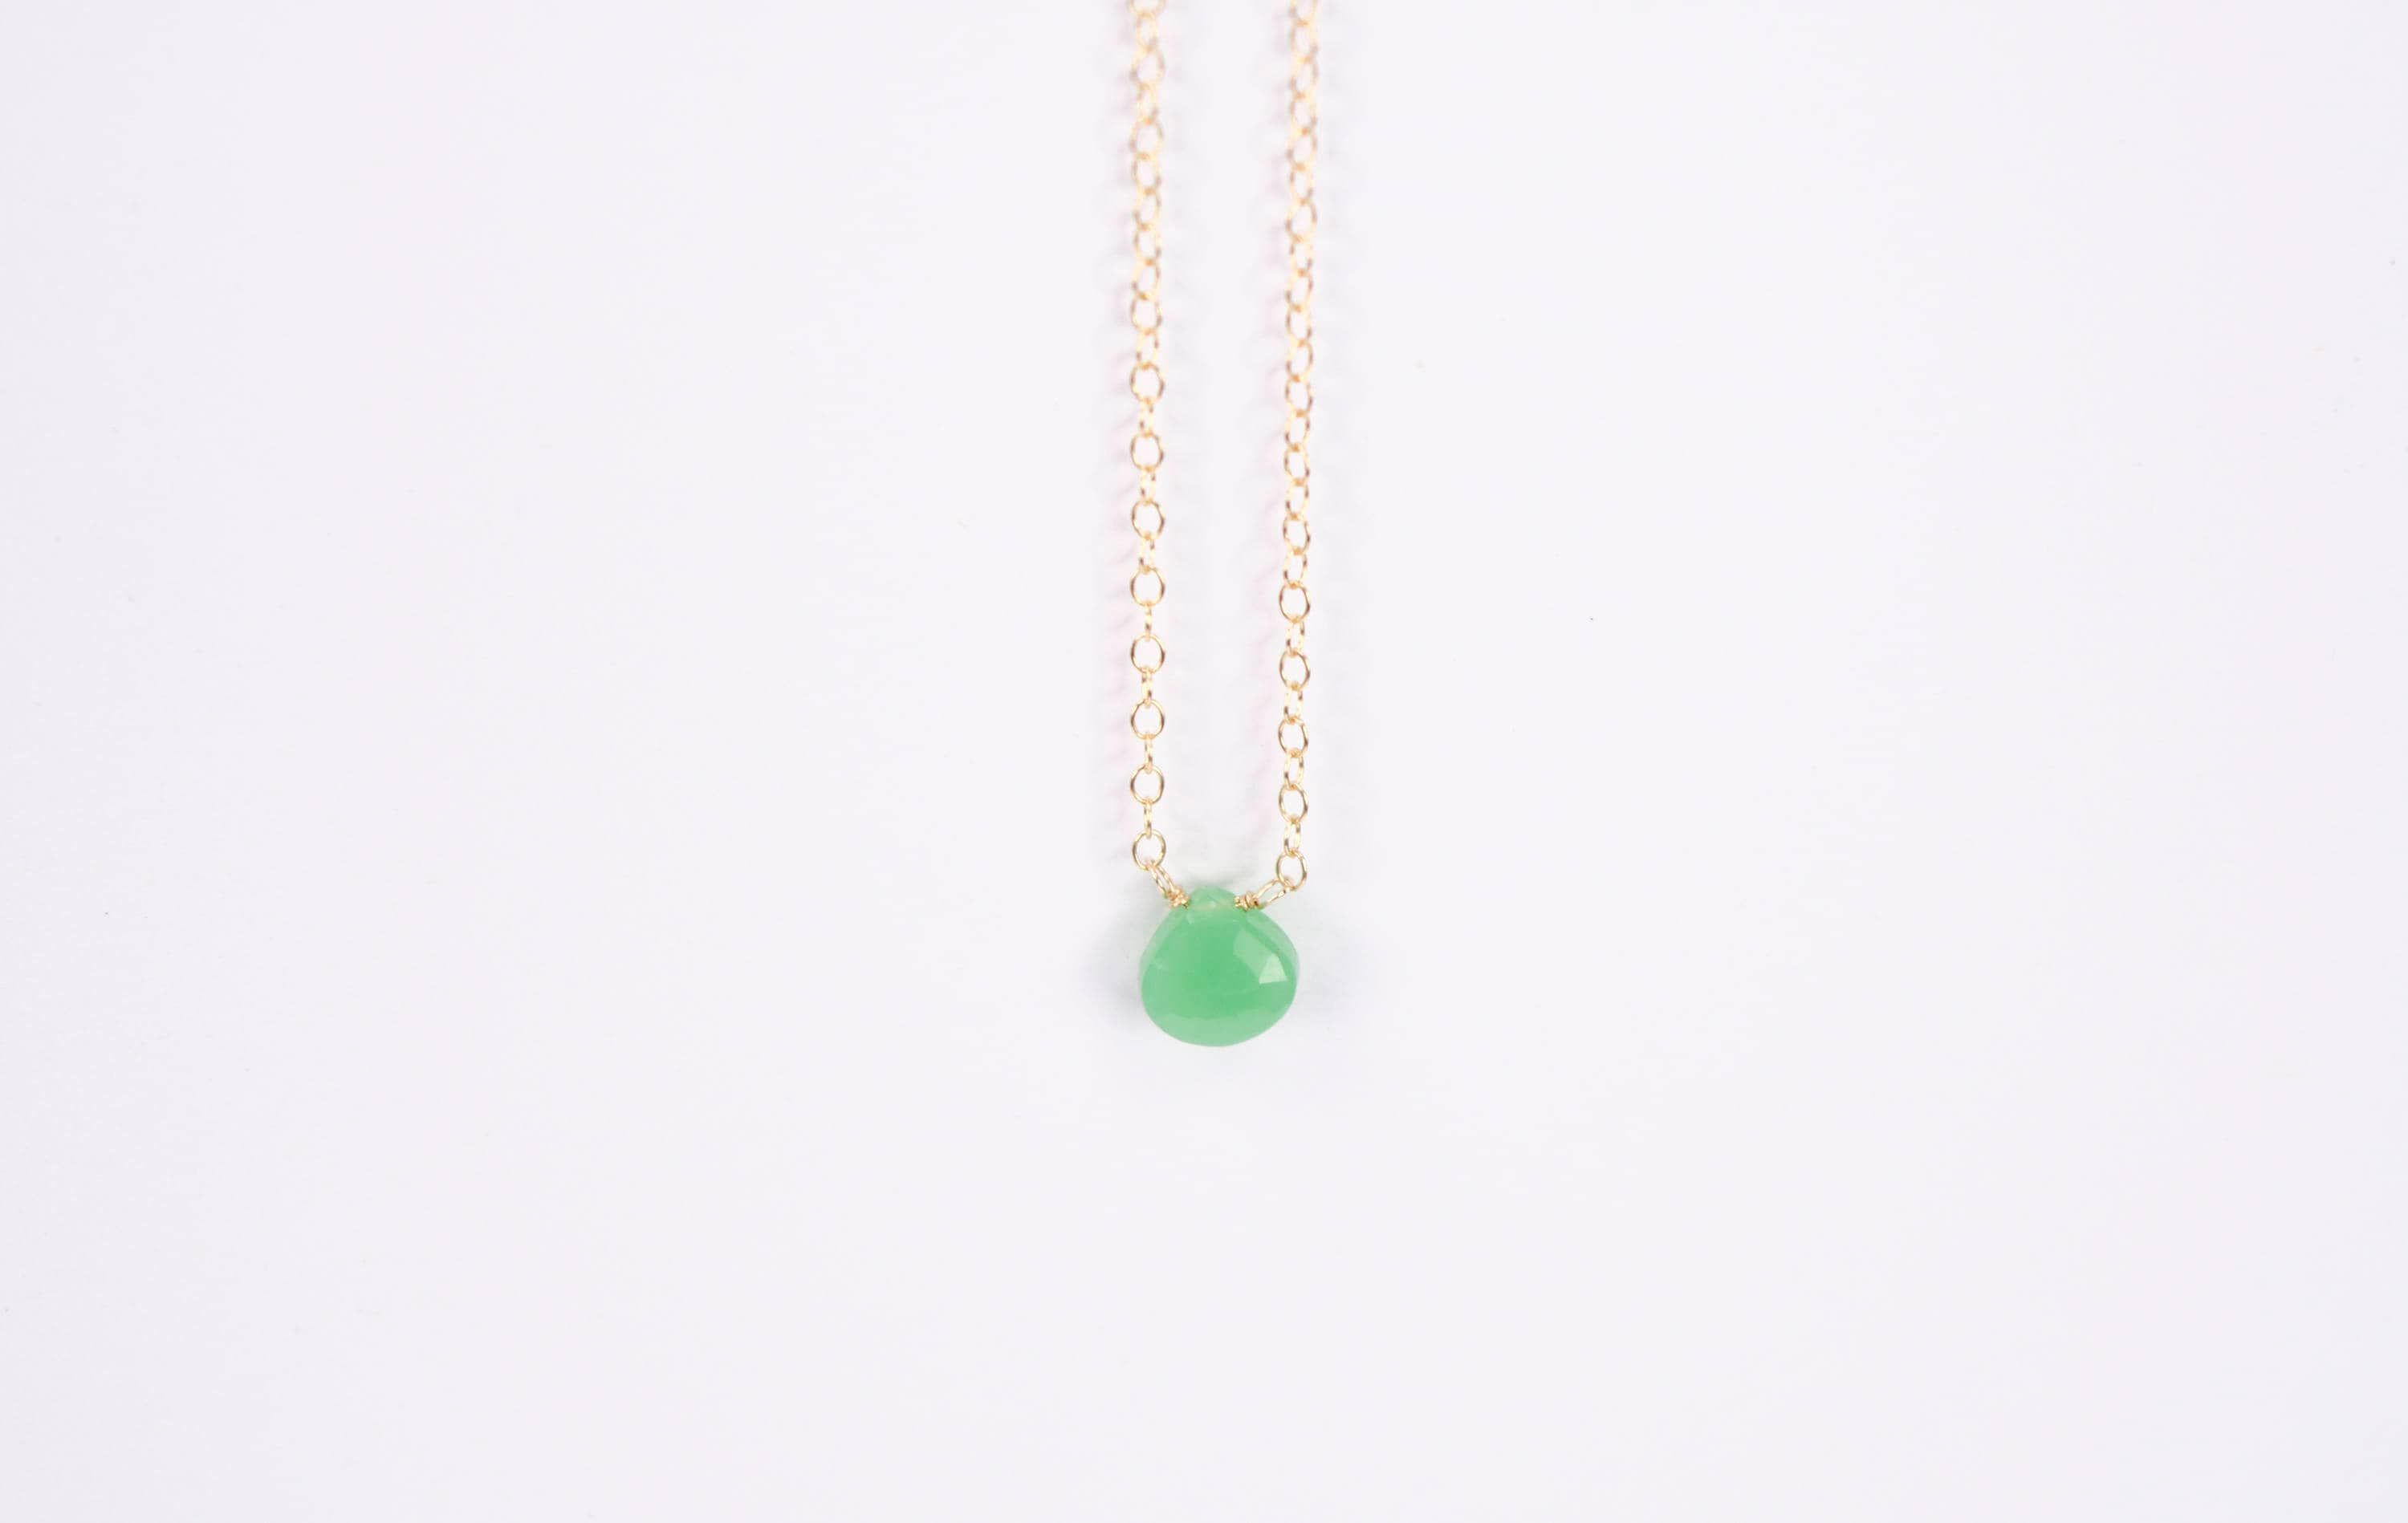 and skadegard peridot lena chrysoprase necklace ls in turquoise zoom product